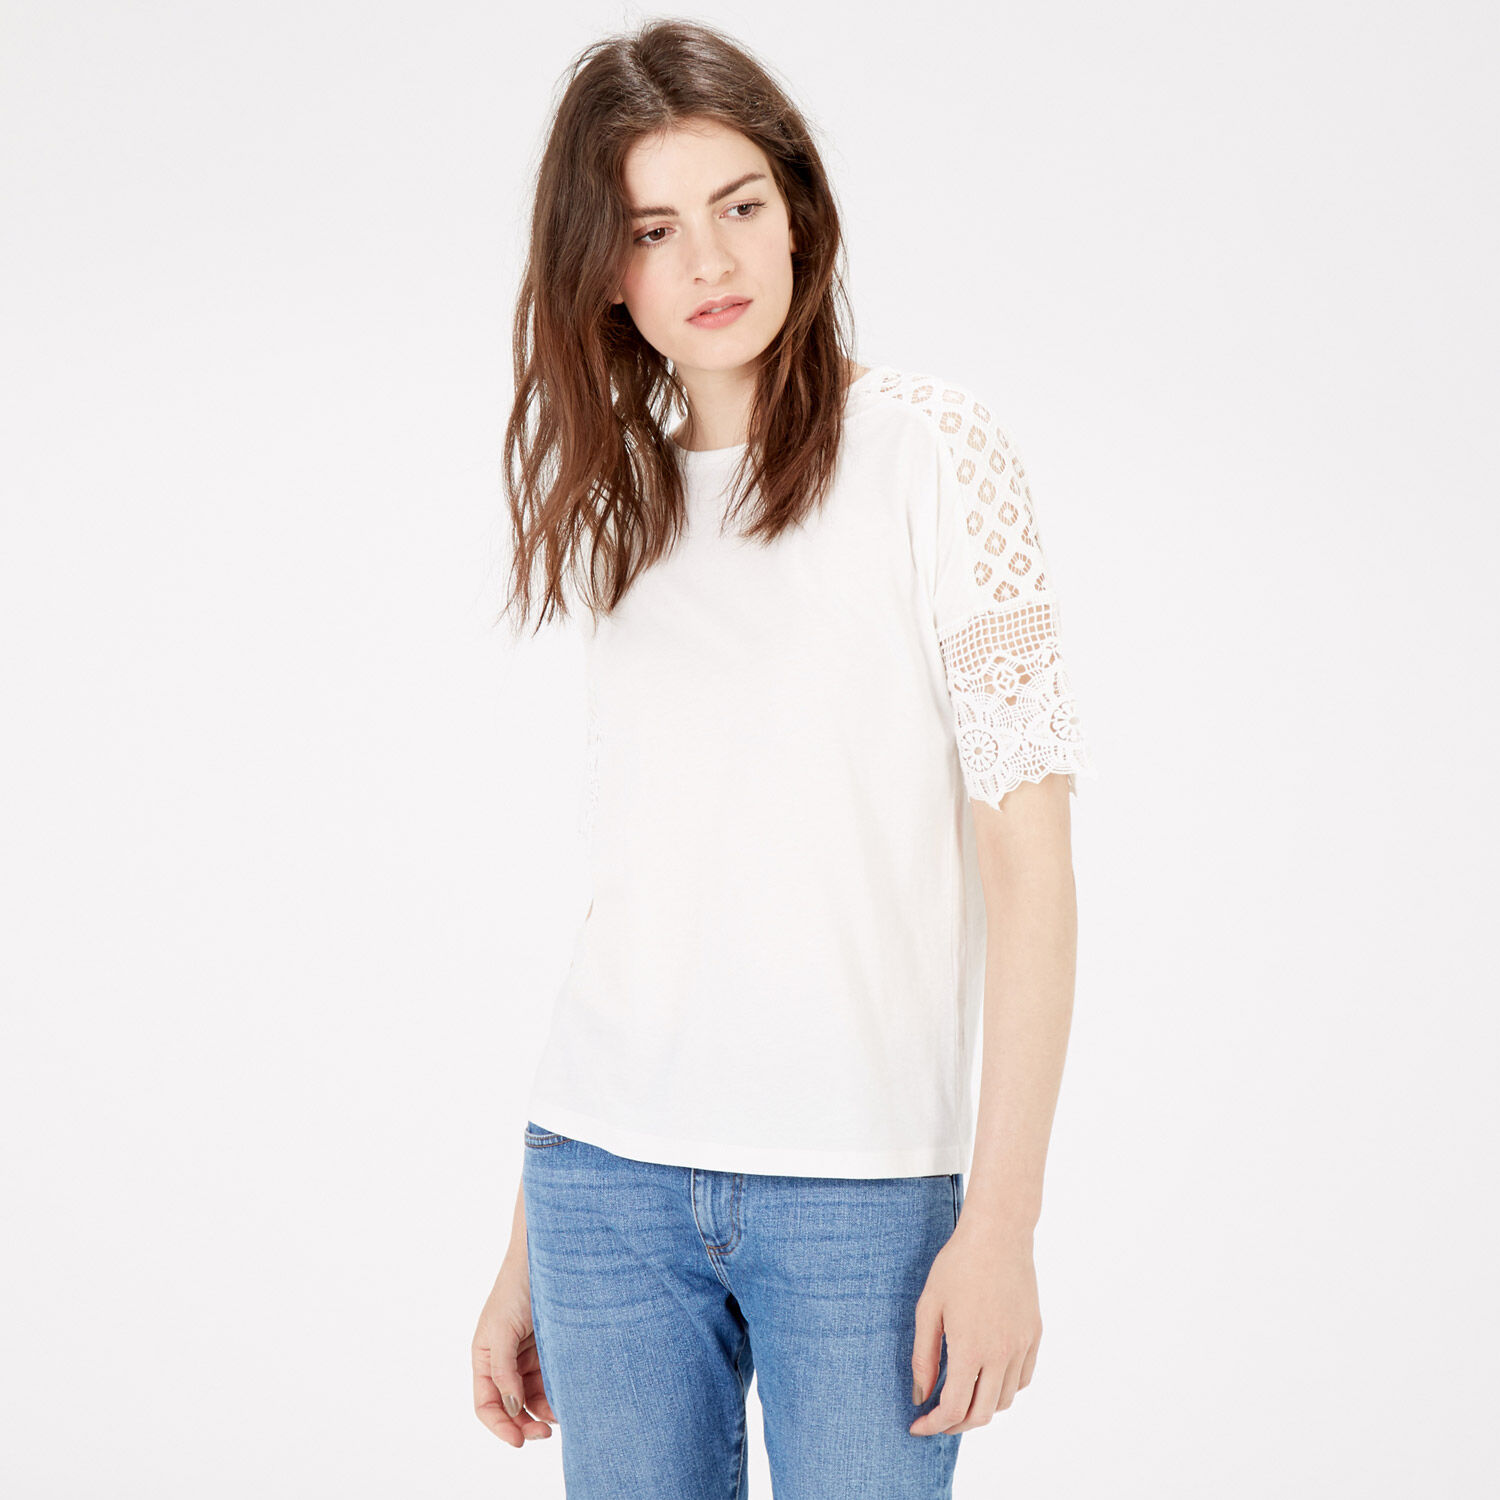 Here at Cotton Mill we carry a great selection of cotton shirts for women with many shirt styles, fabrics and even more colors. Our cotton tops are comfortable, durable, pre-shrunk and easy care. Combine with a pair of cotton pants and maybe a jacket, and you've got comfort with style.